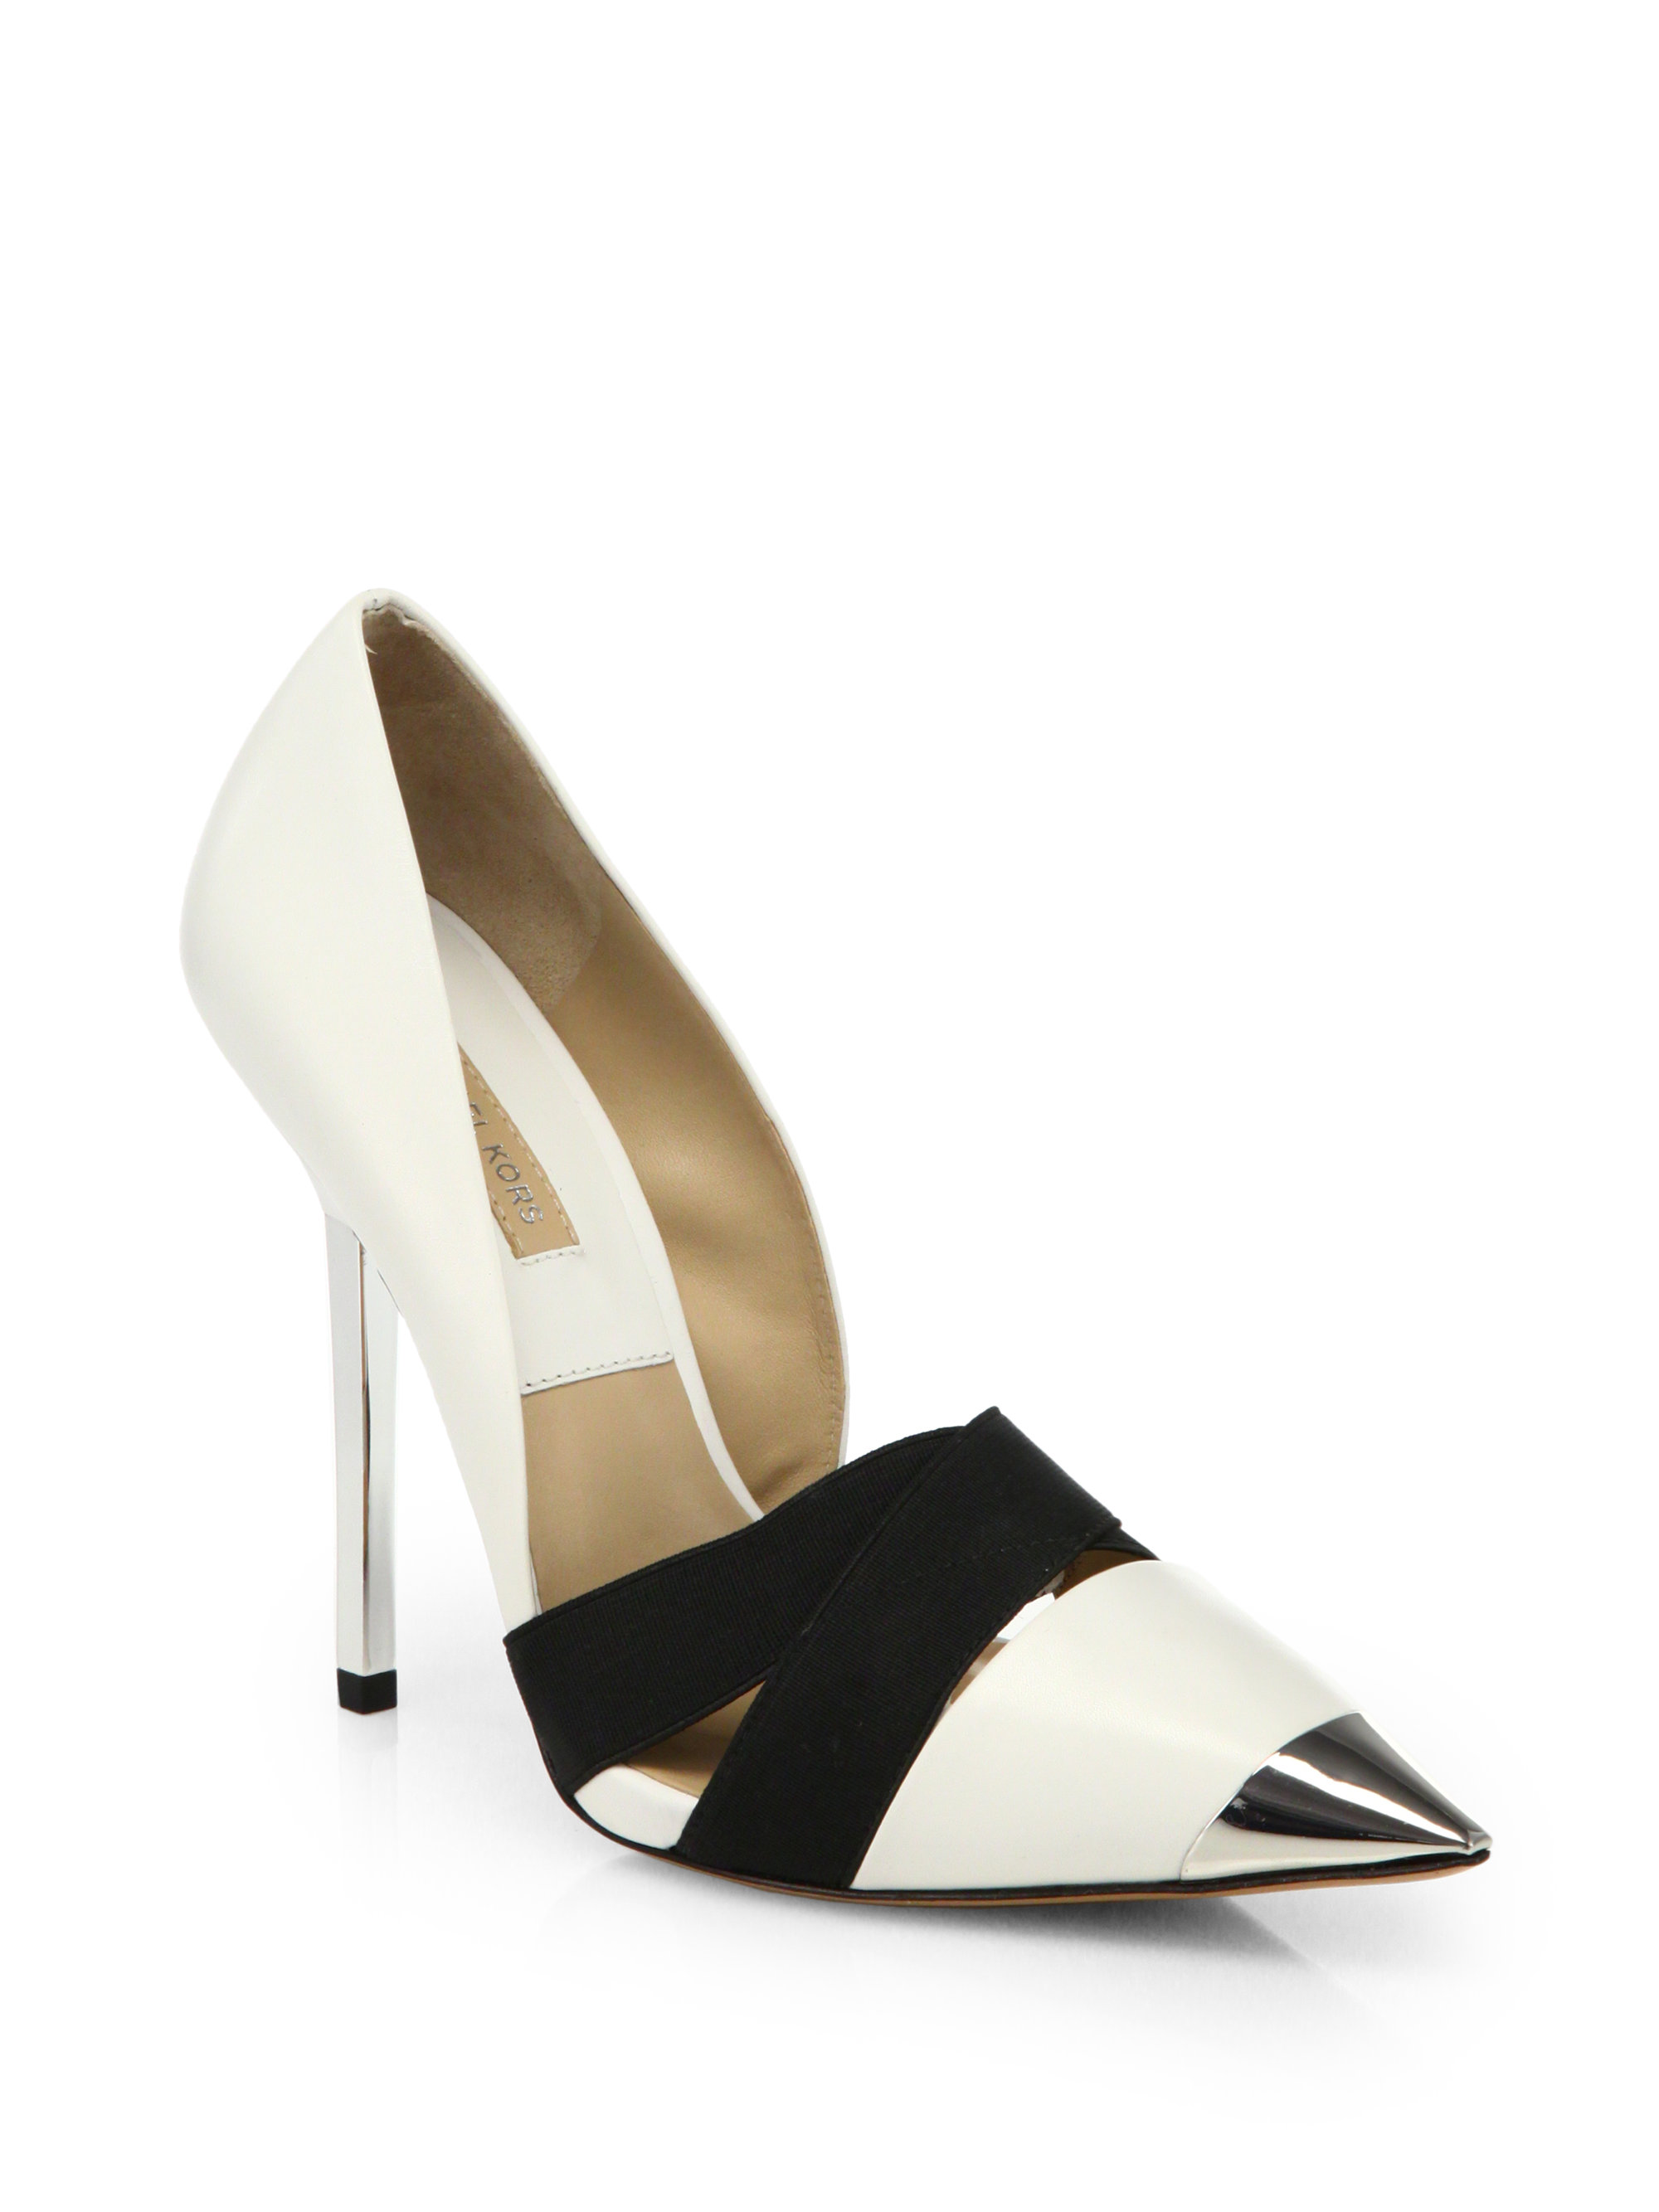 910e346efae Lyst - Michael Kors Ana Metallicheel Pumps in White